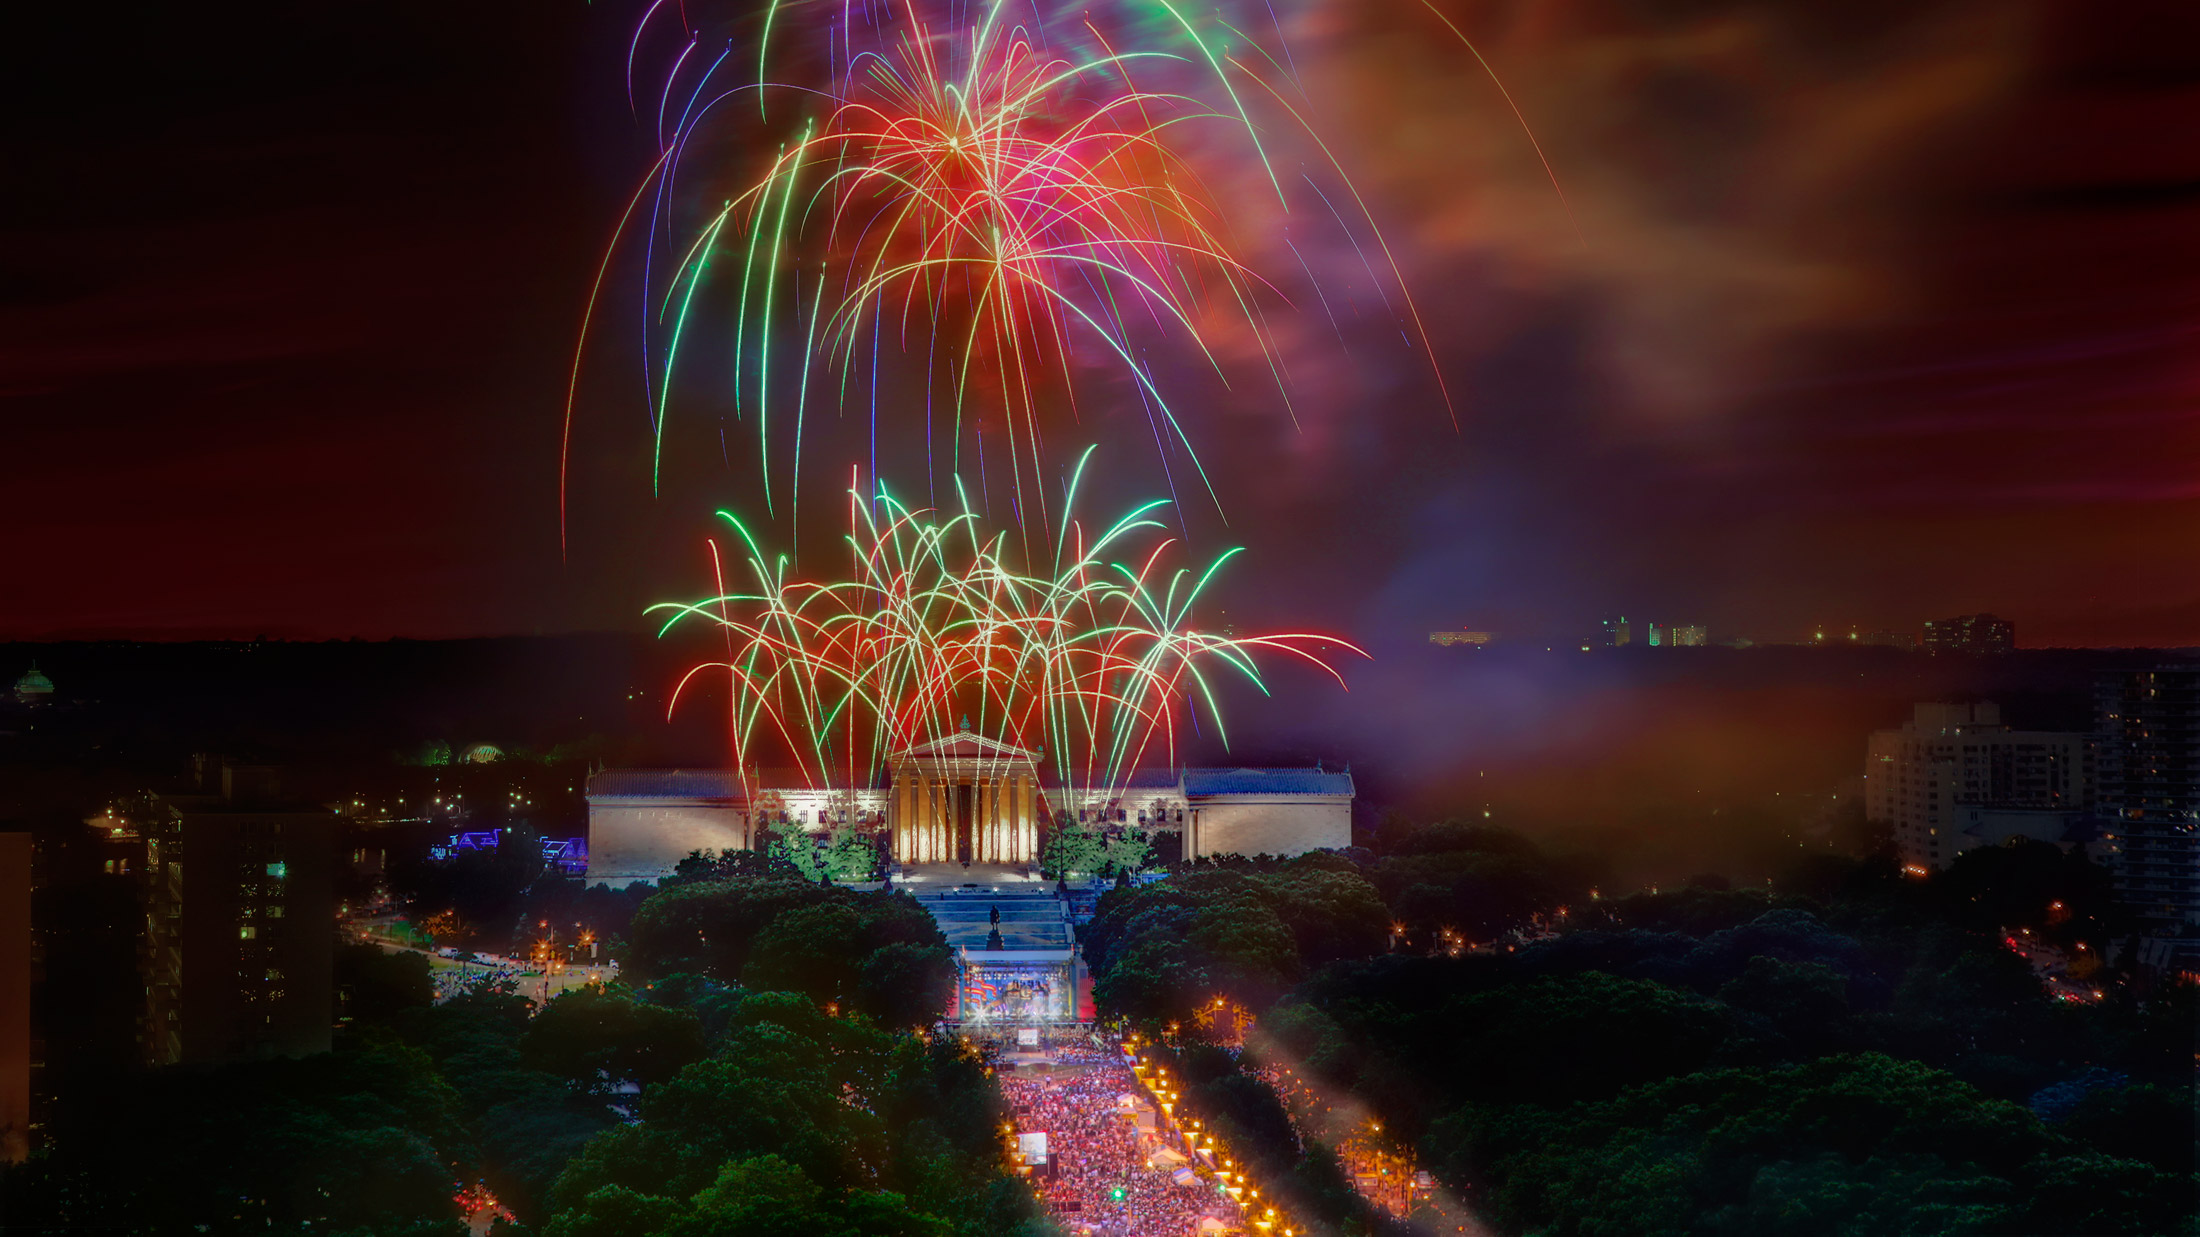 fireworks_Philadelphia_Museum_of_Art_july-4th-wawa-welcome-america-gwidman-for-vp-2000x1237px.jpg